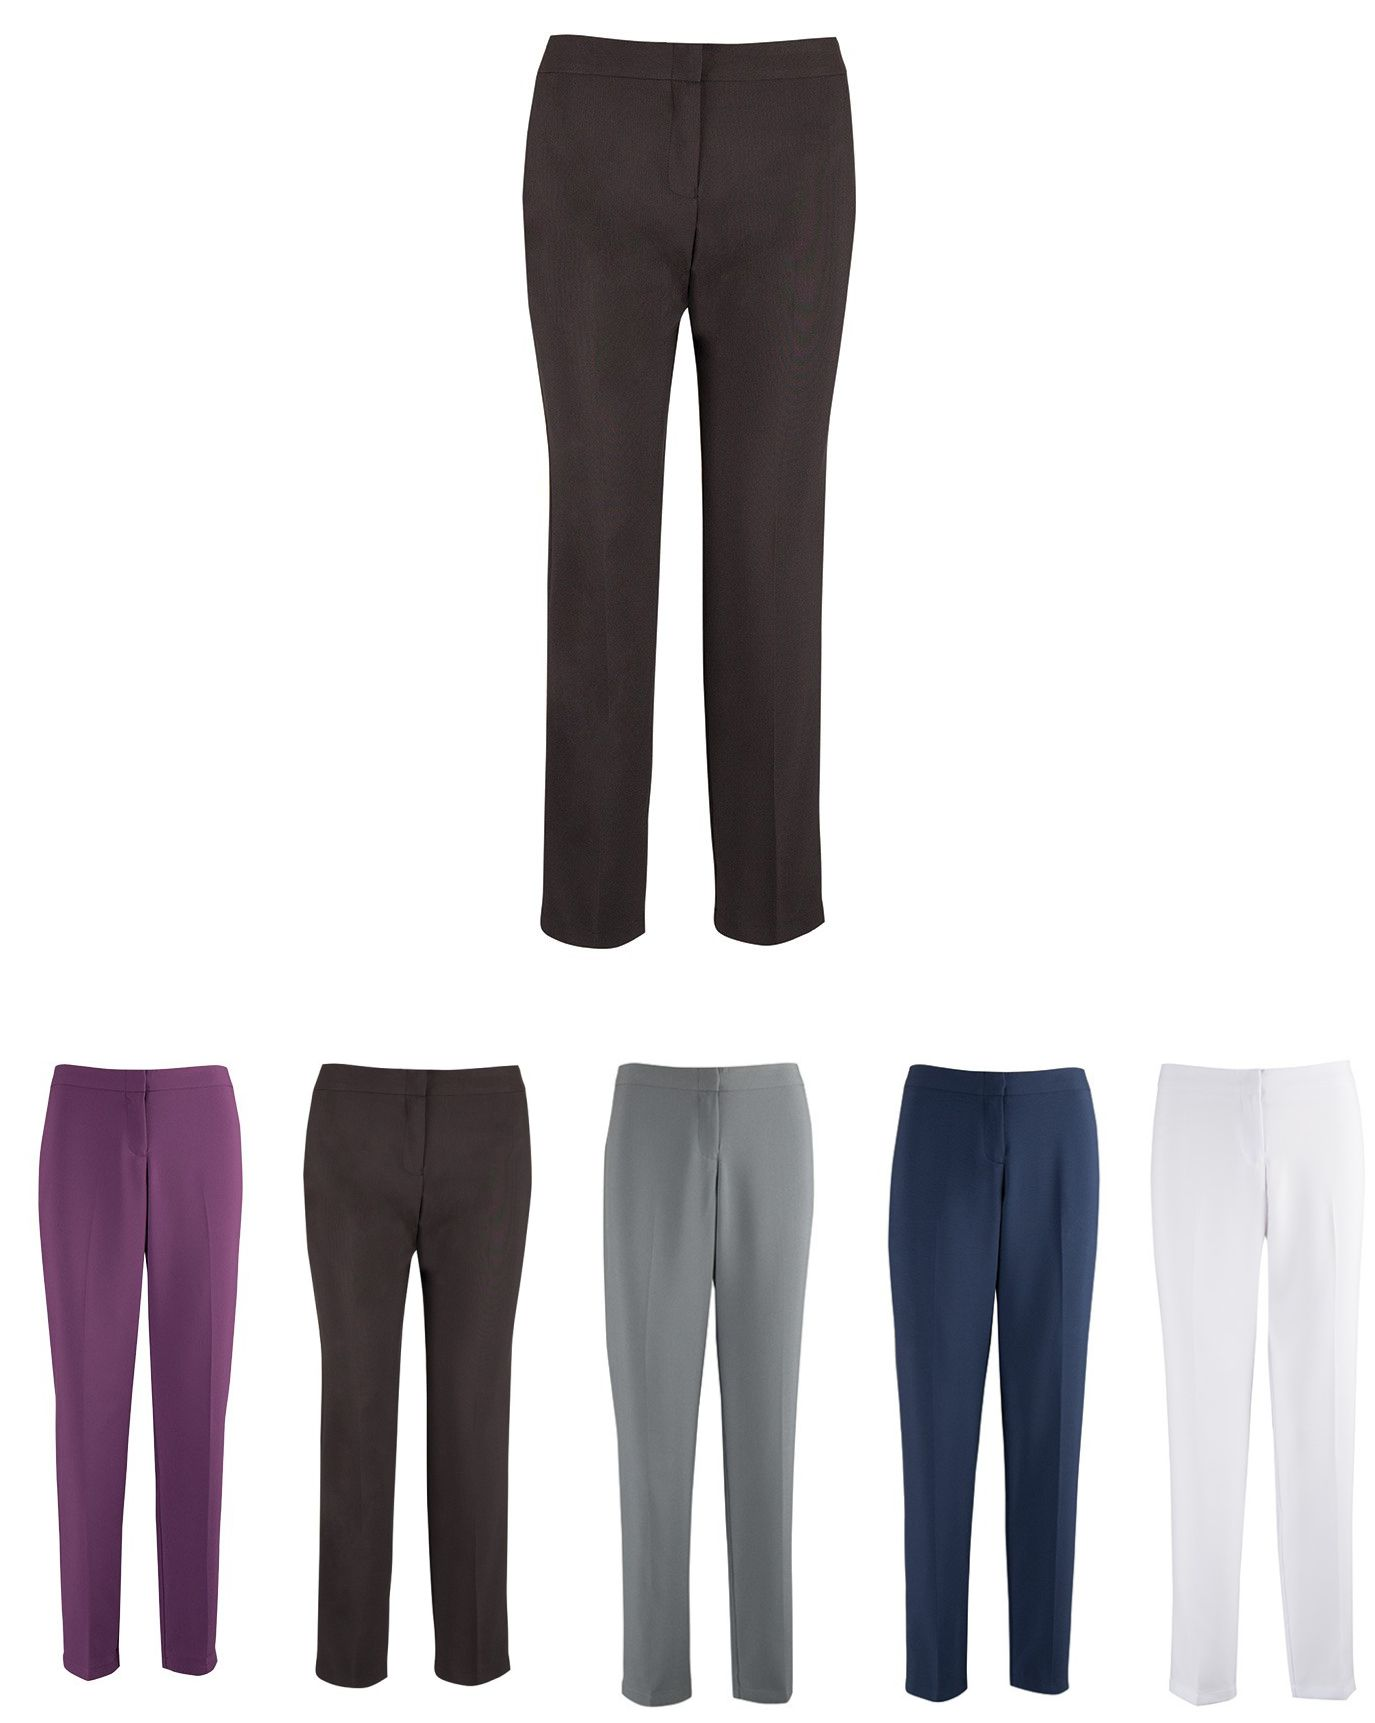 NF75 Women's Slim Leg Trousers